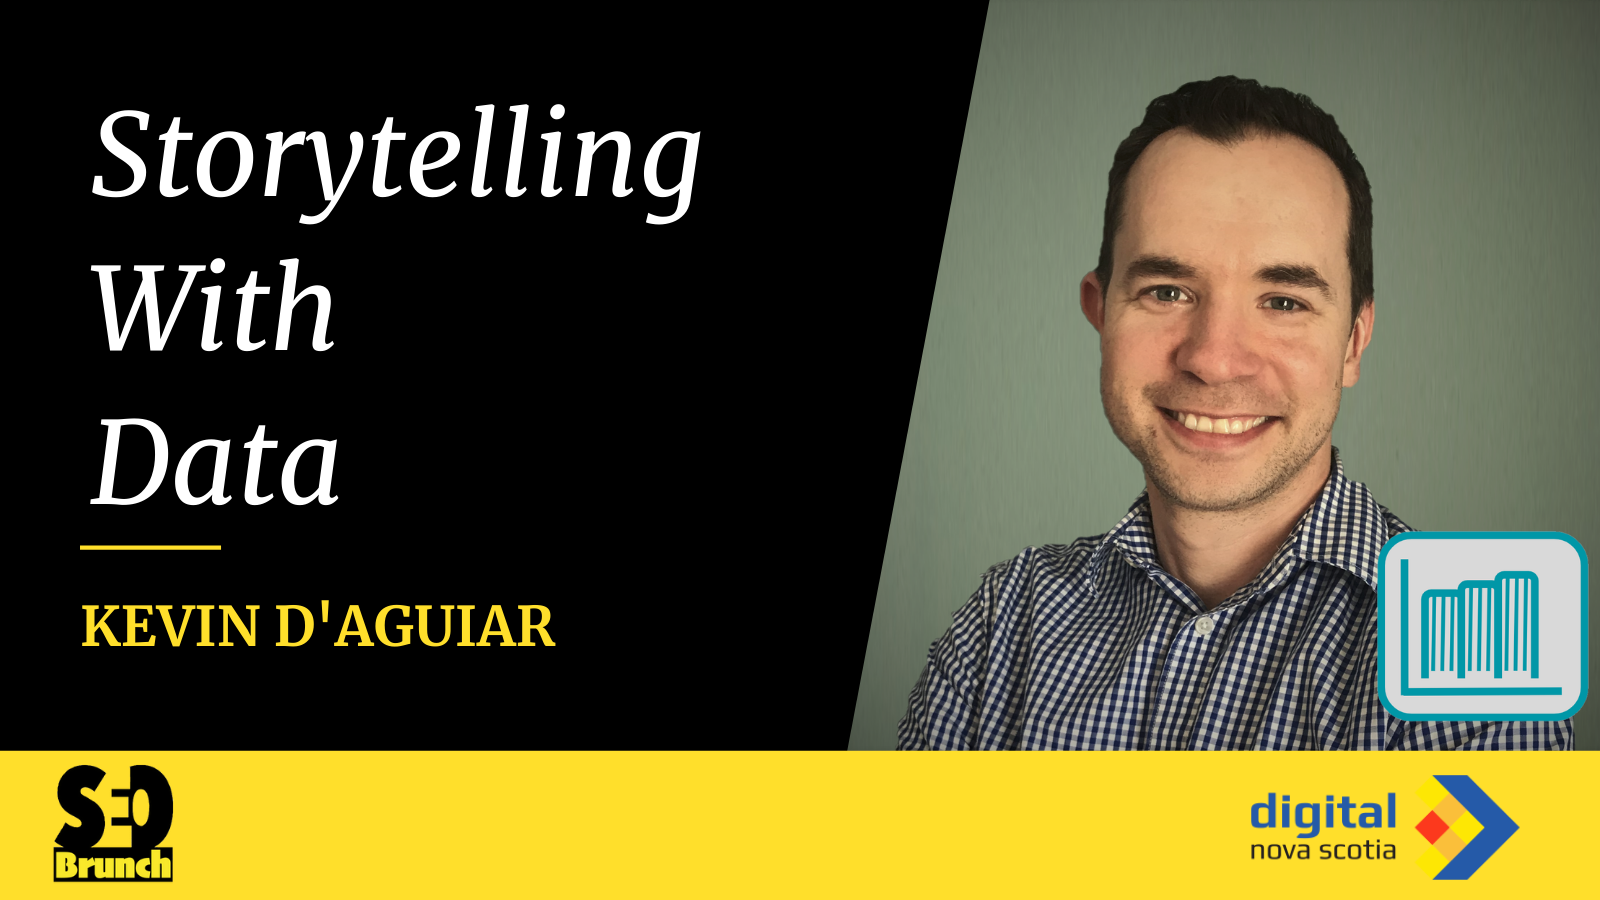 storytelling with data with kevin d'aguiar